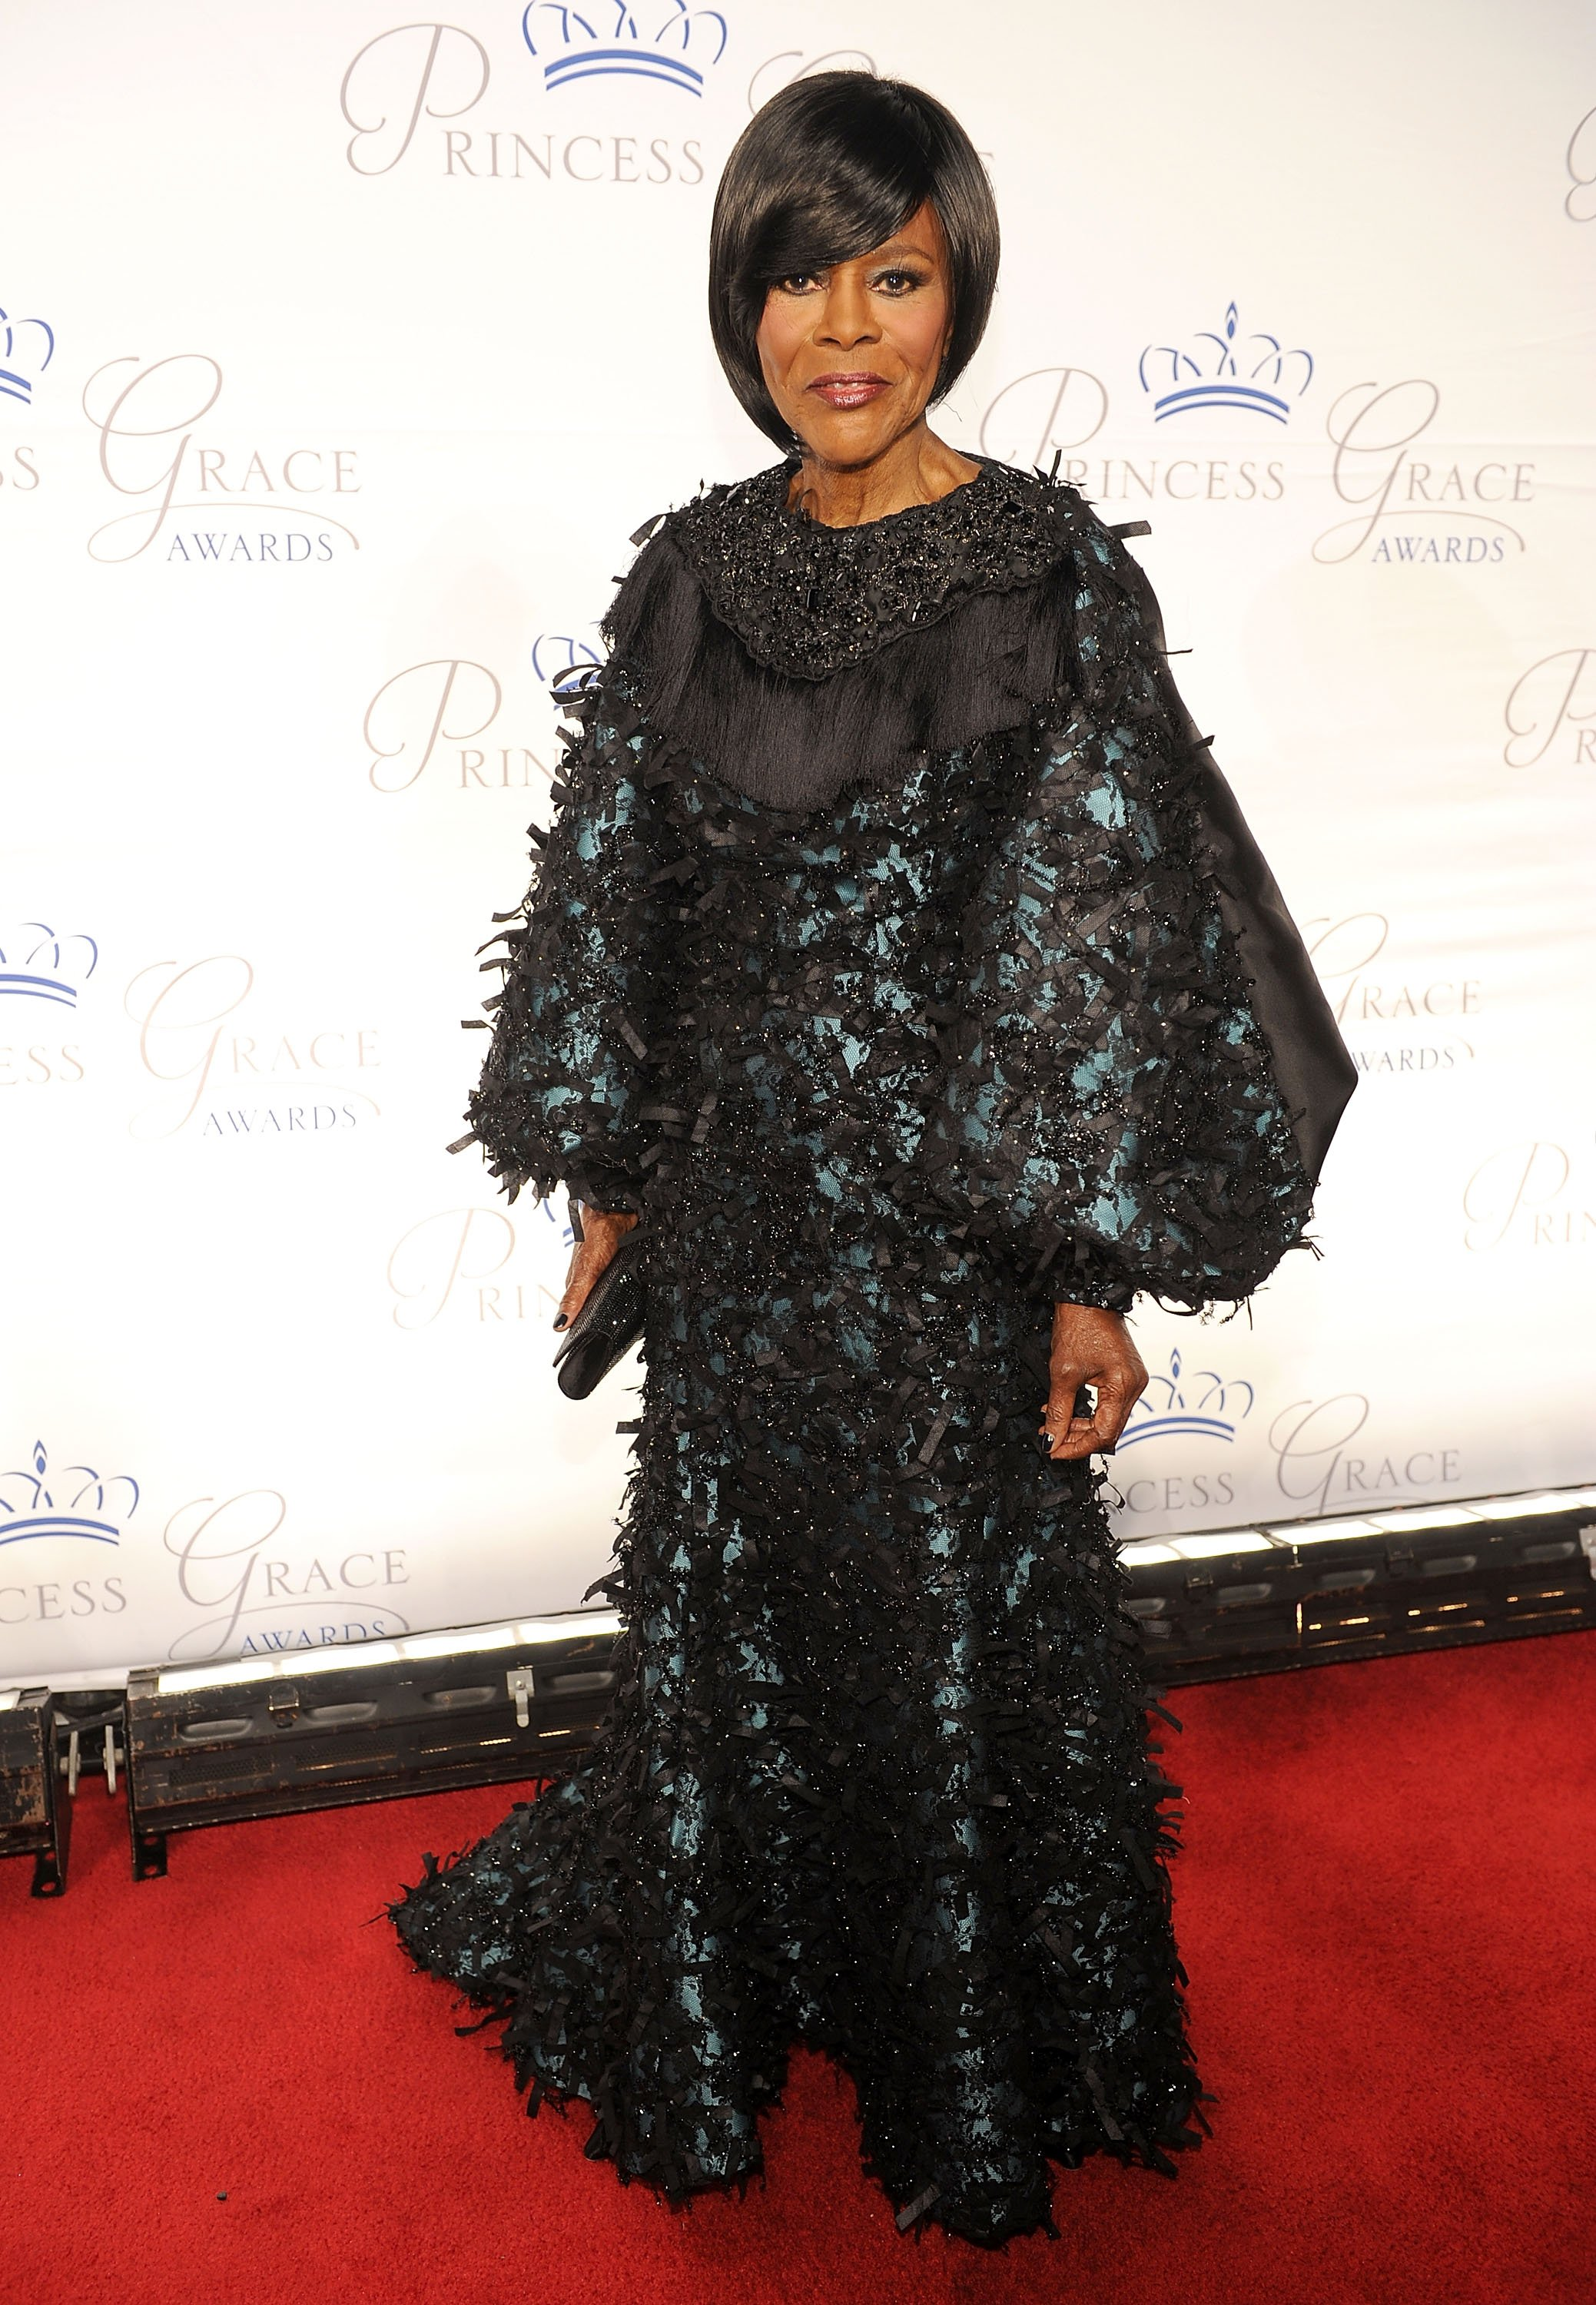 Cicely Tyson attends the 2013 Princess Grace Awards Gala at Cipriani 42nd Street on October 30, 2013 in New York City. | Source: Getty Images